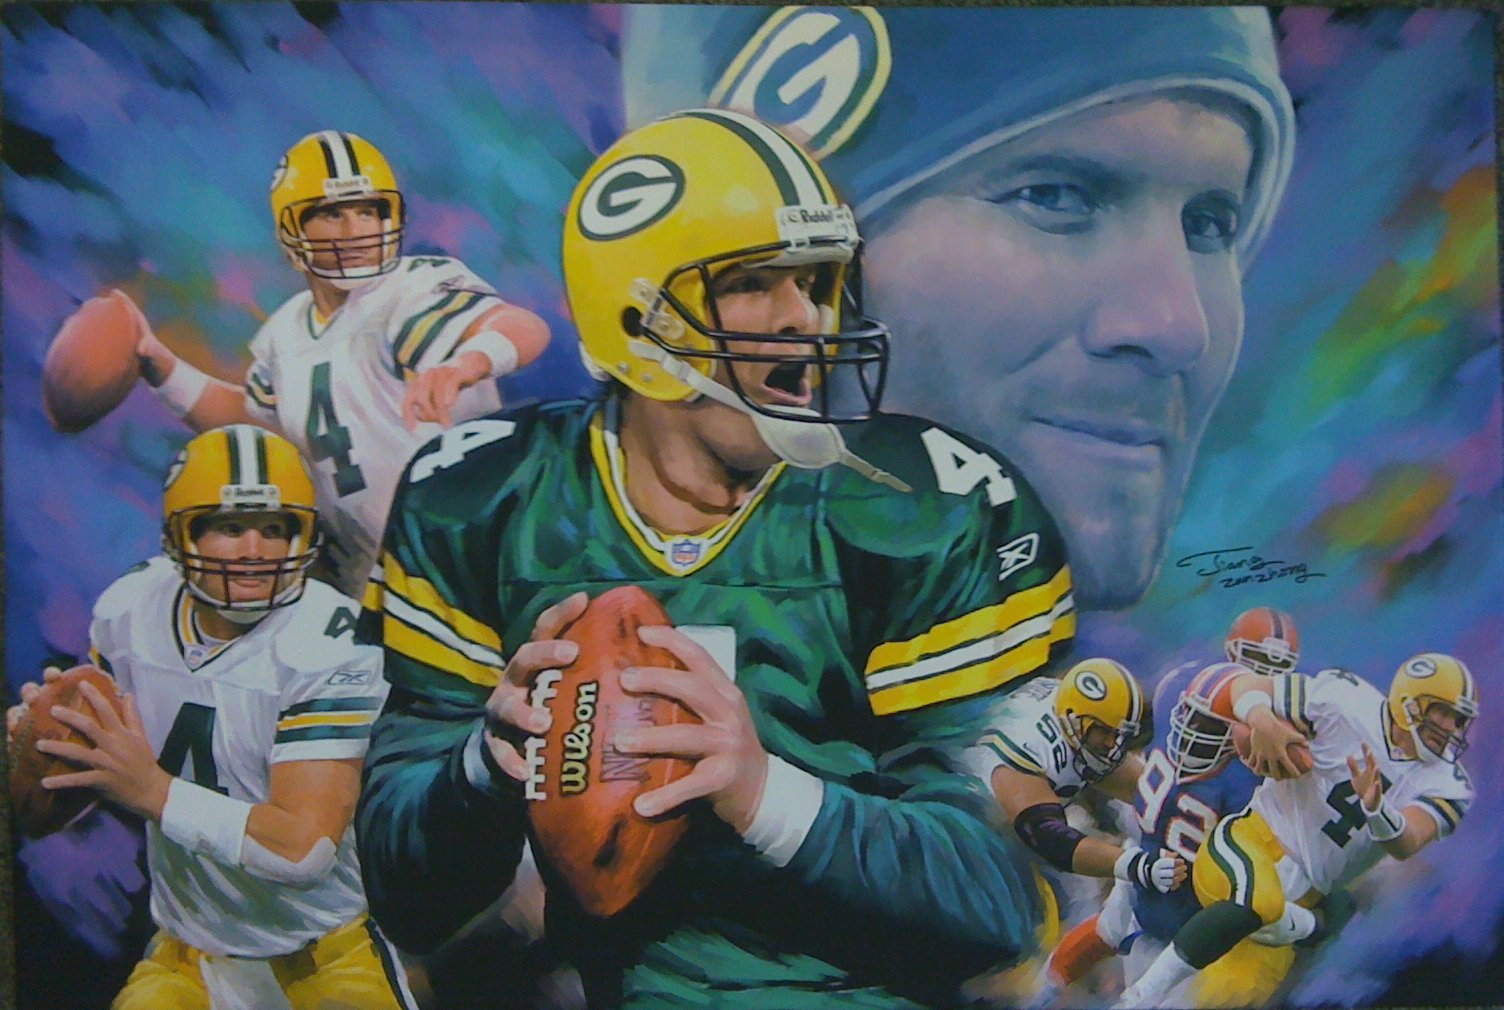 a biography of brett favre a football player About nfl legend who became the first quarterback to throw for over 70,000 yards, complete over 6,000 passes, and tally over 500 touchdowns in his career, mostly spent with the green bay packers he became the first player to win three ap nfl mvp awards in a row and led the packers to victory in super bowl xxxi.